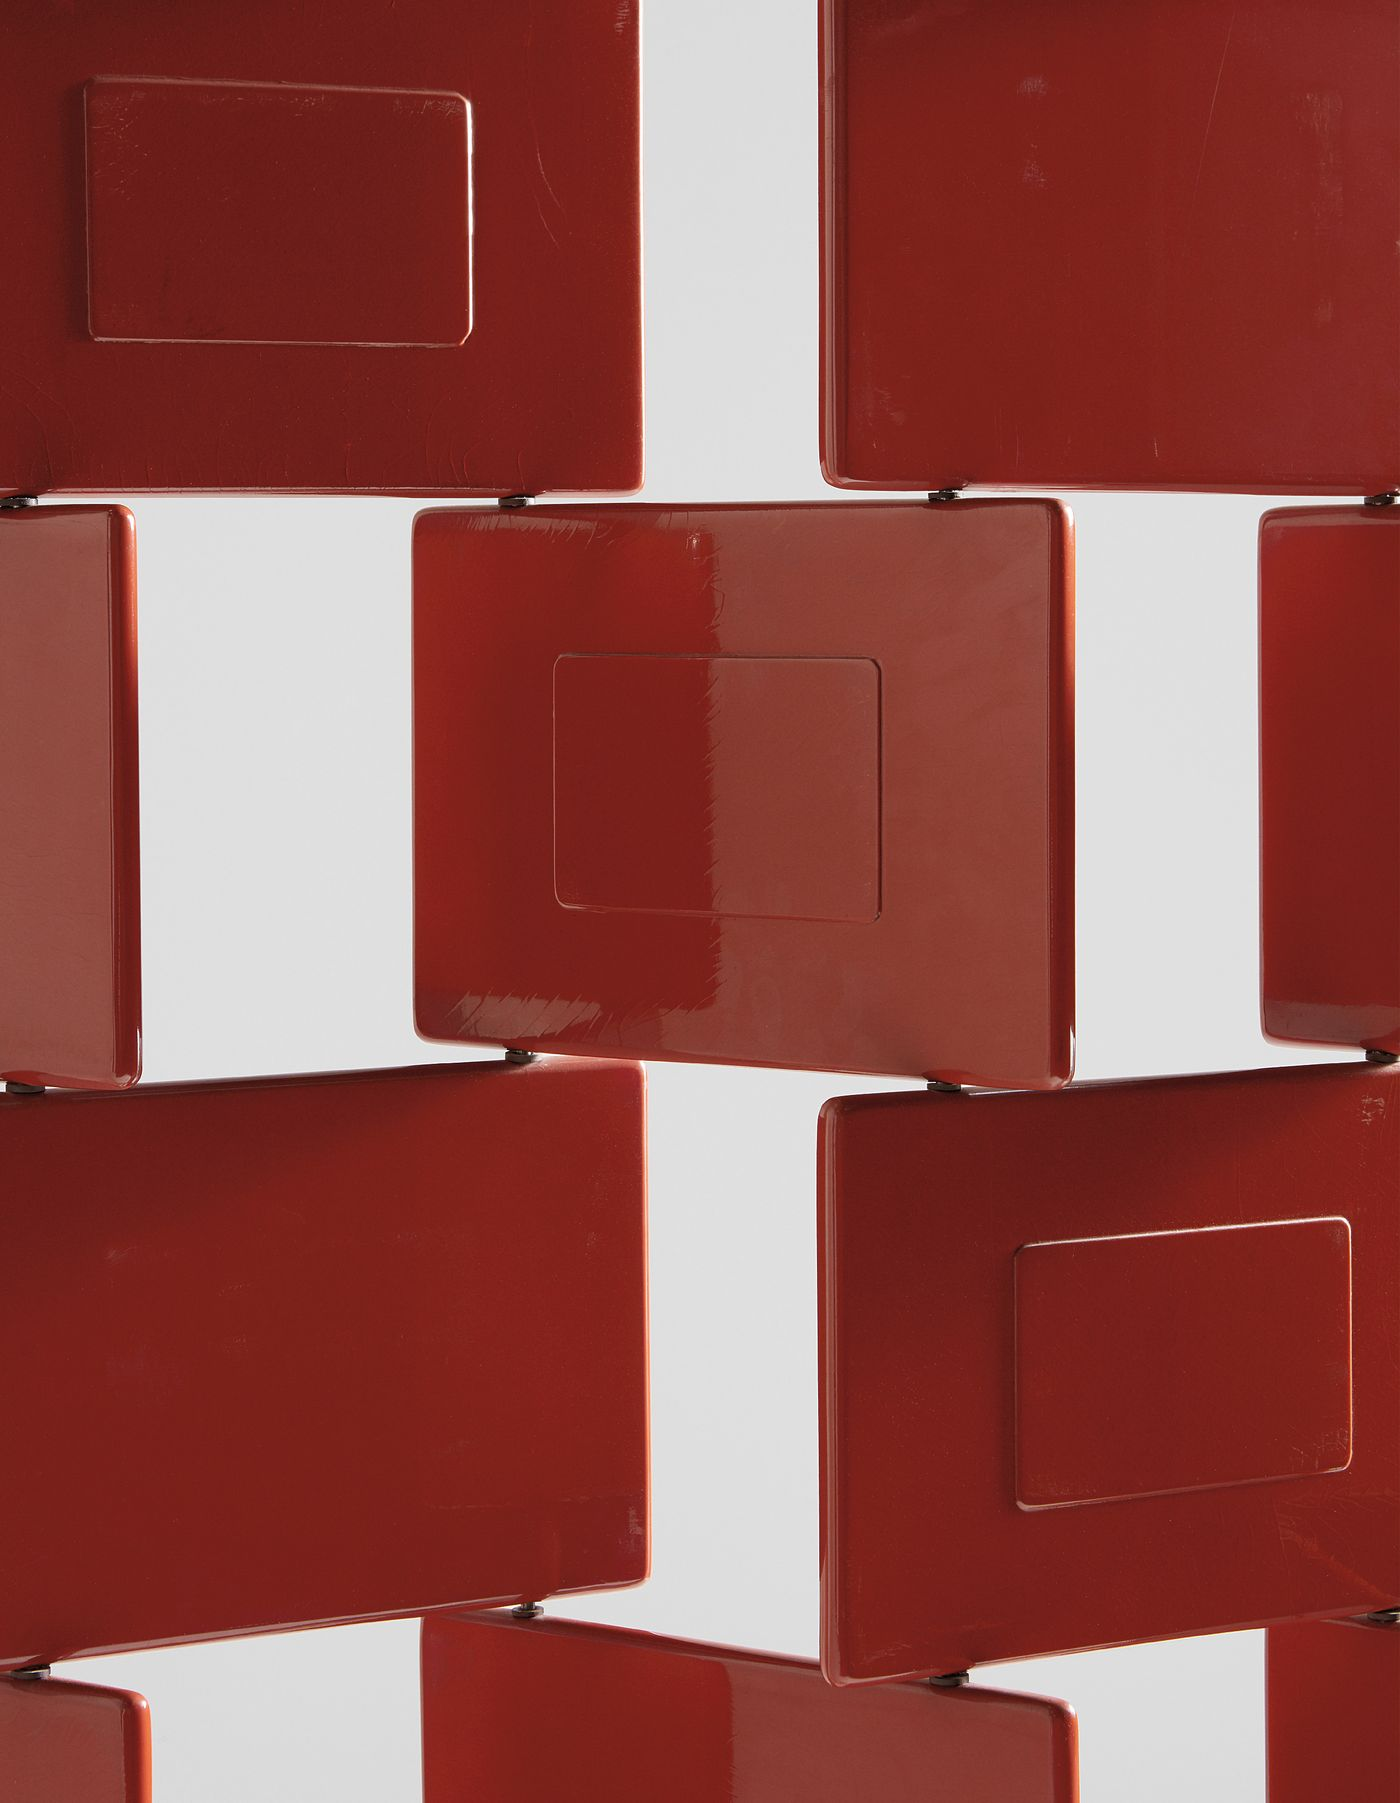 """A one-of-a-kind """"Brick"""" screen in red lacquer marks the Modernist's final burst of creativity in the 1970s, solidifying her status as the long-reigning empress of design."""